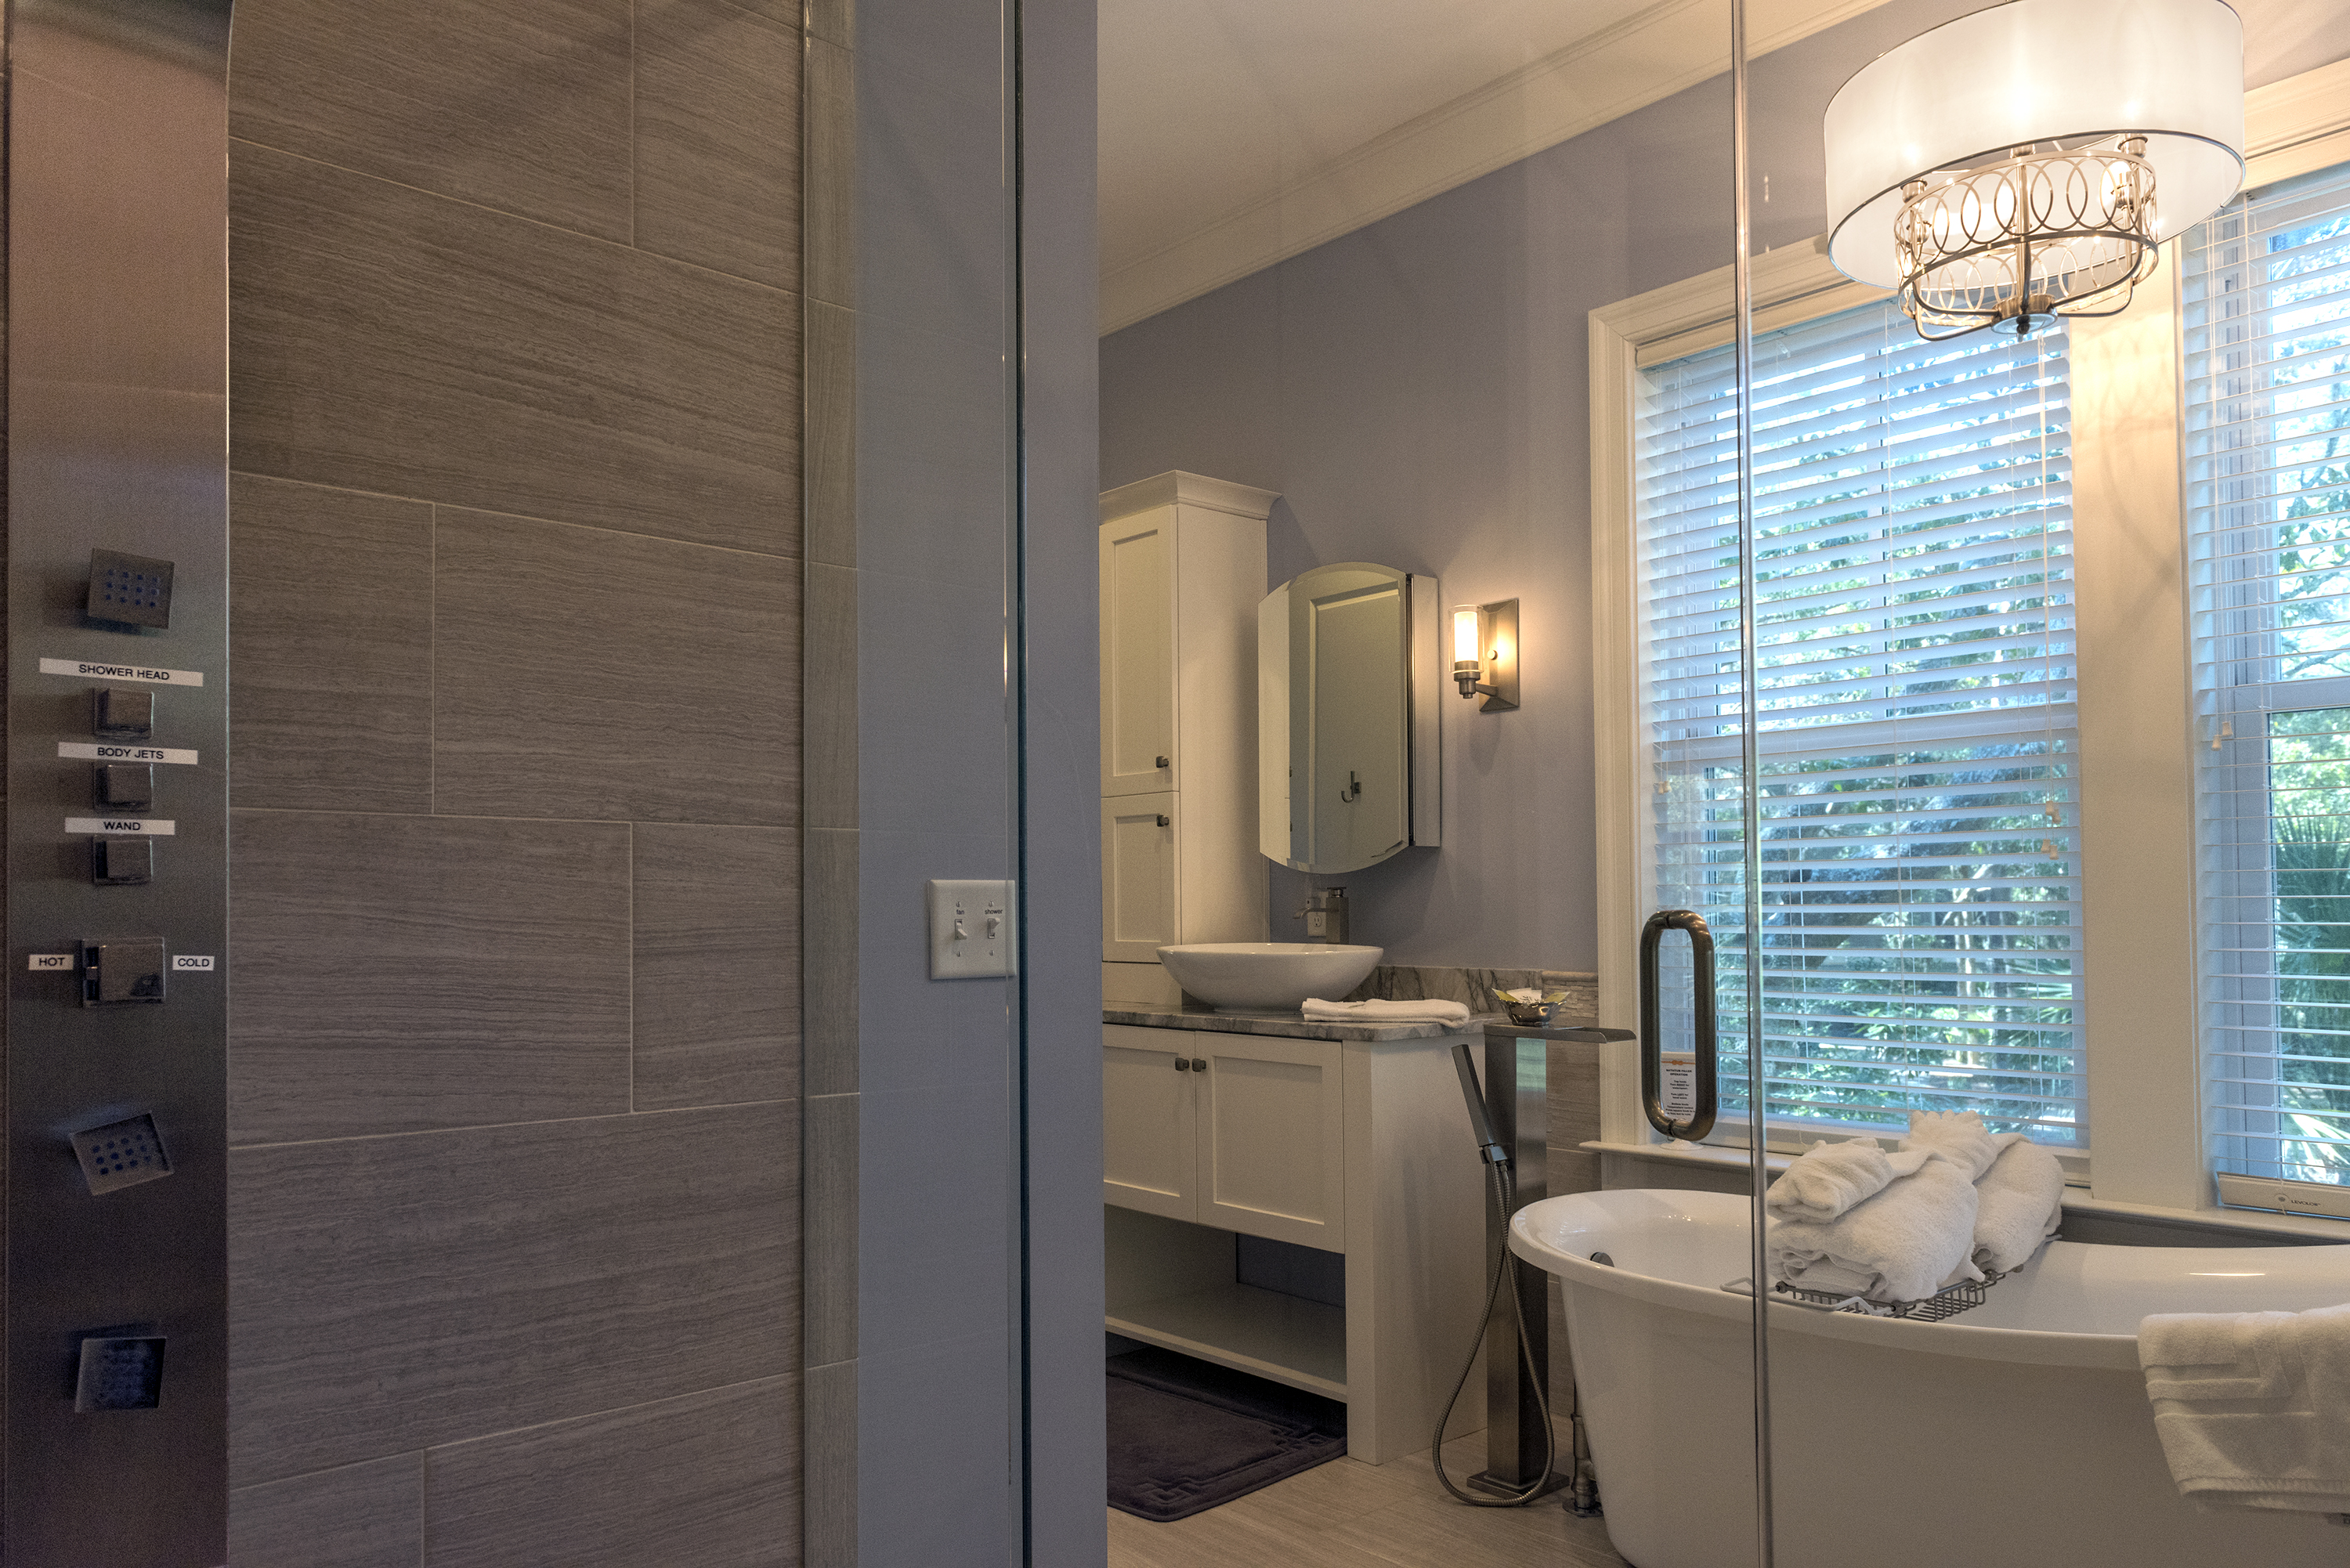 Soak in the slipper tub with a waterfall faucet under the chandelier.